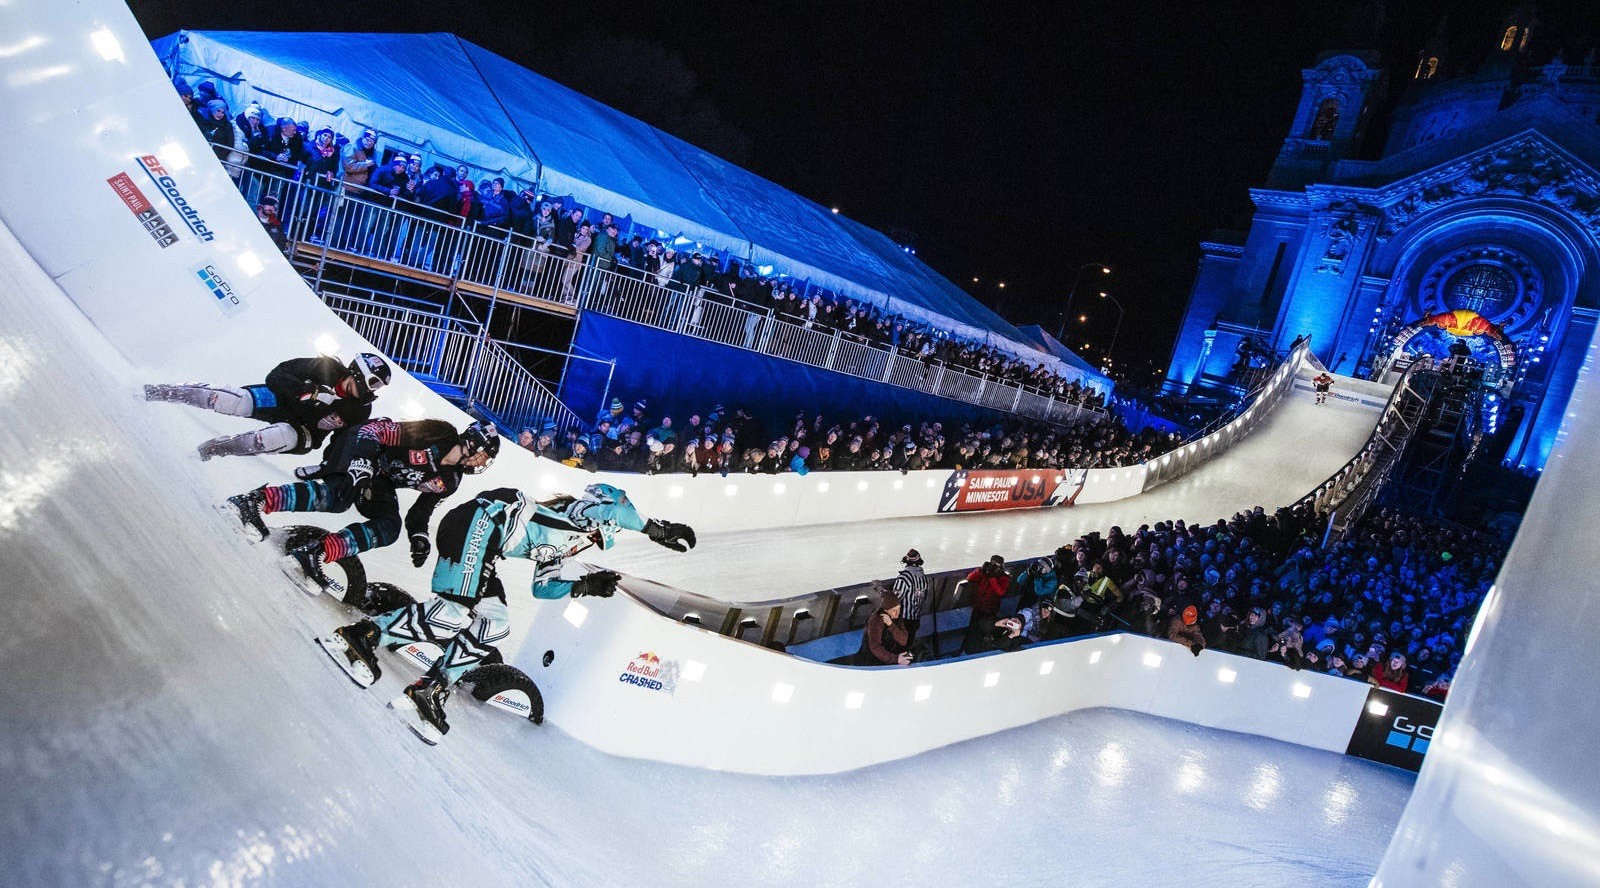 Red Bull Crashed Ice takes place this weekend and it looks insane